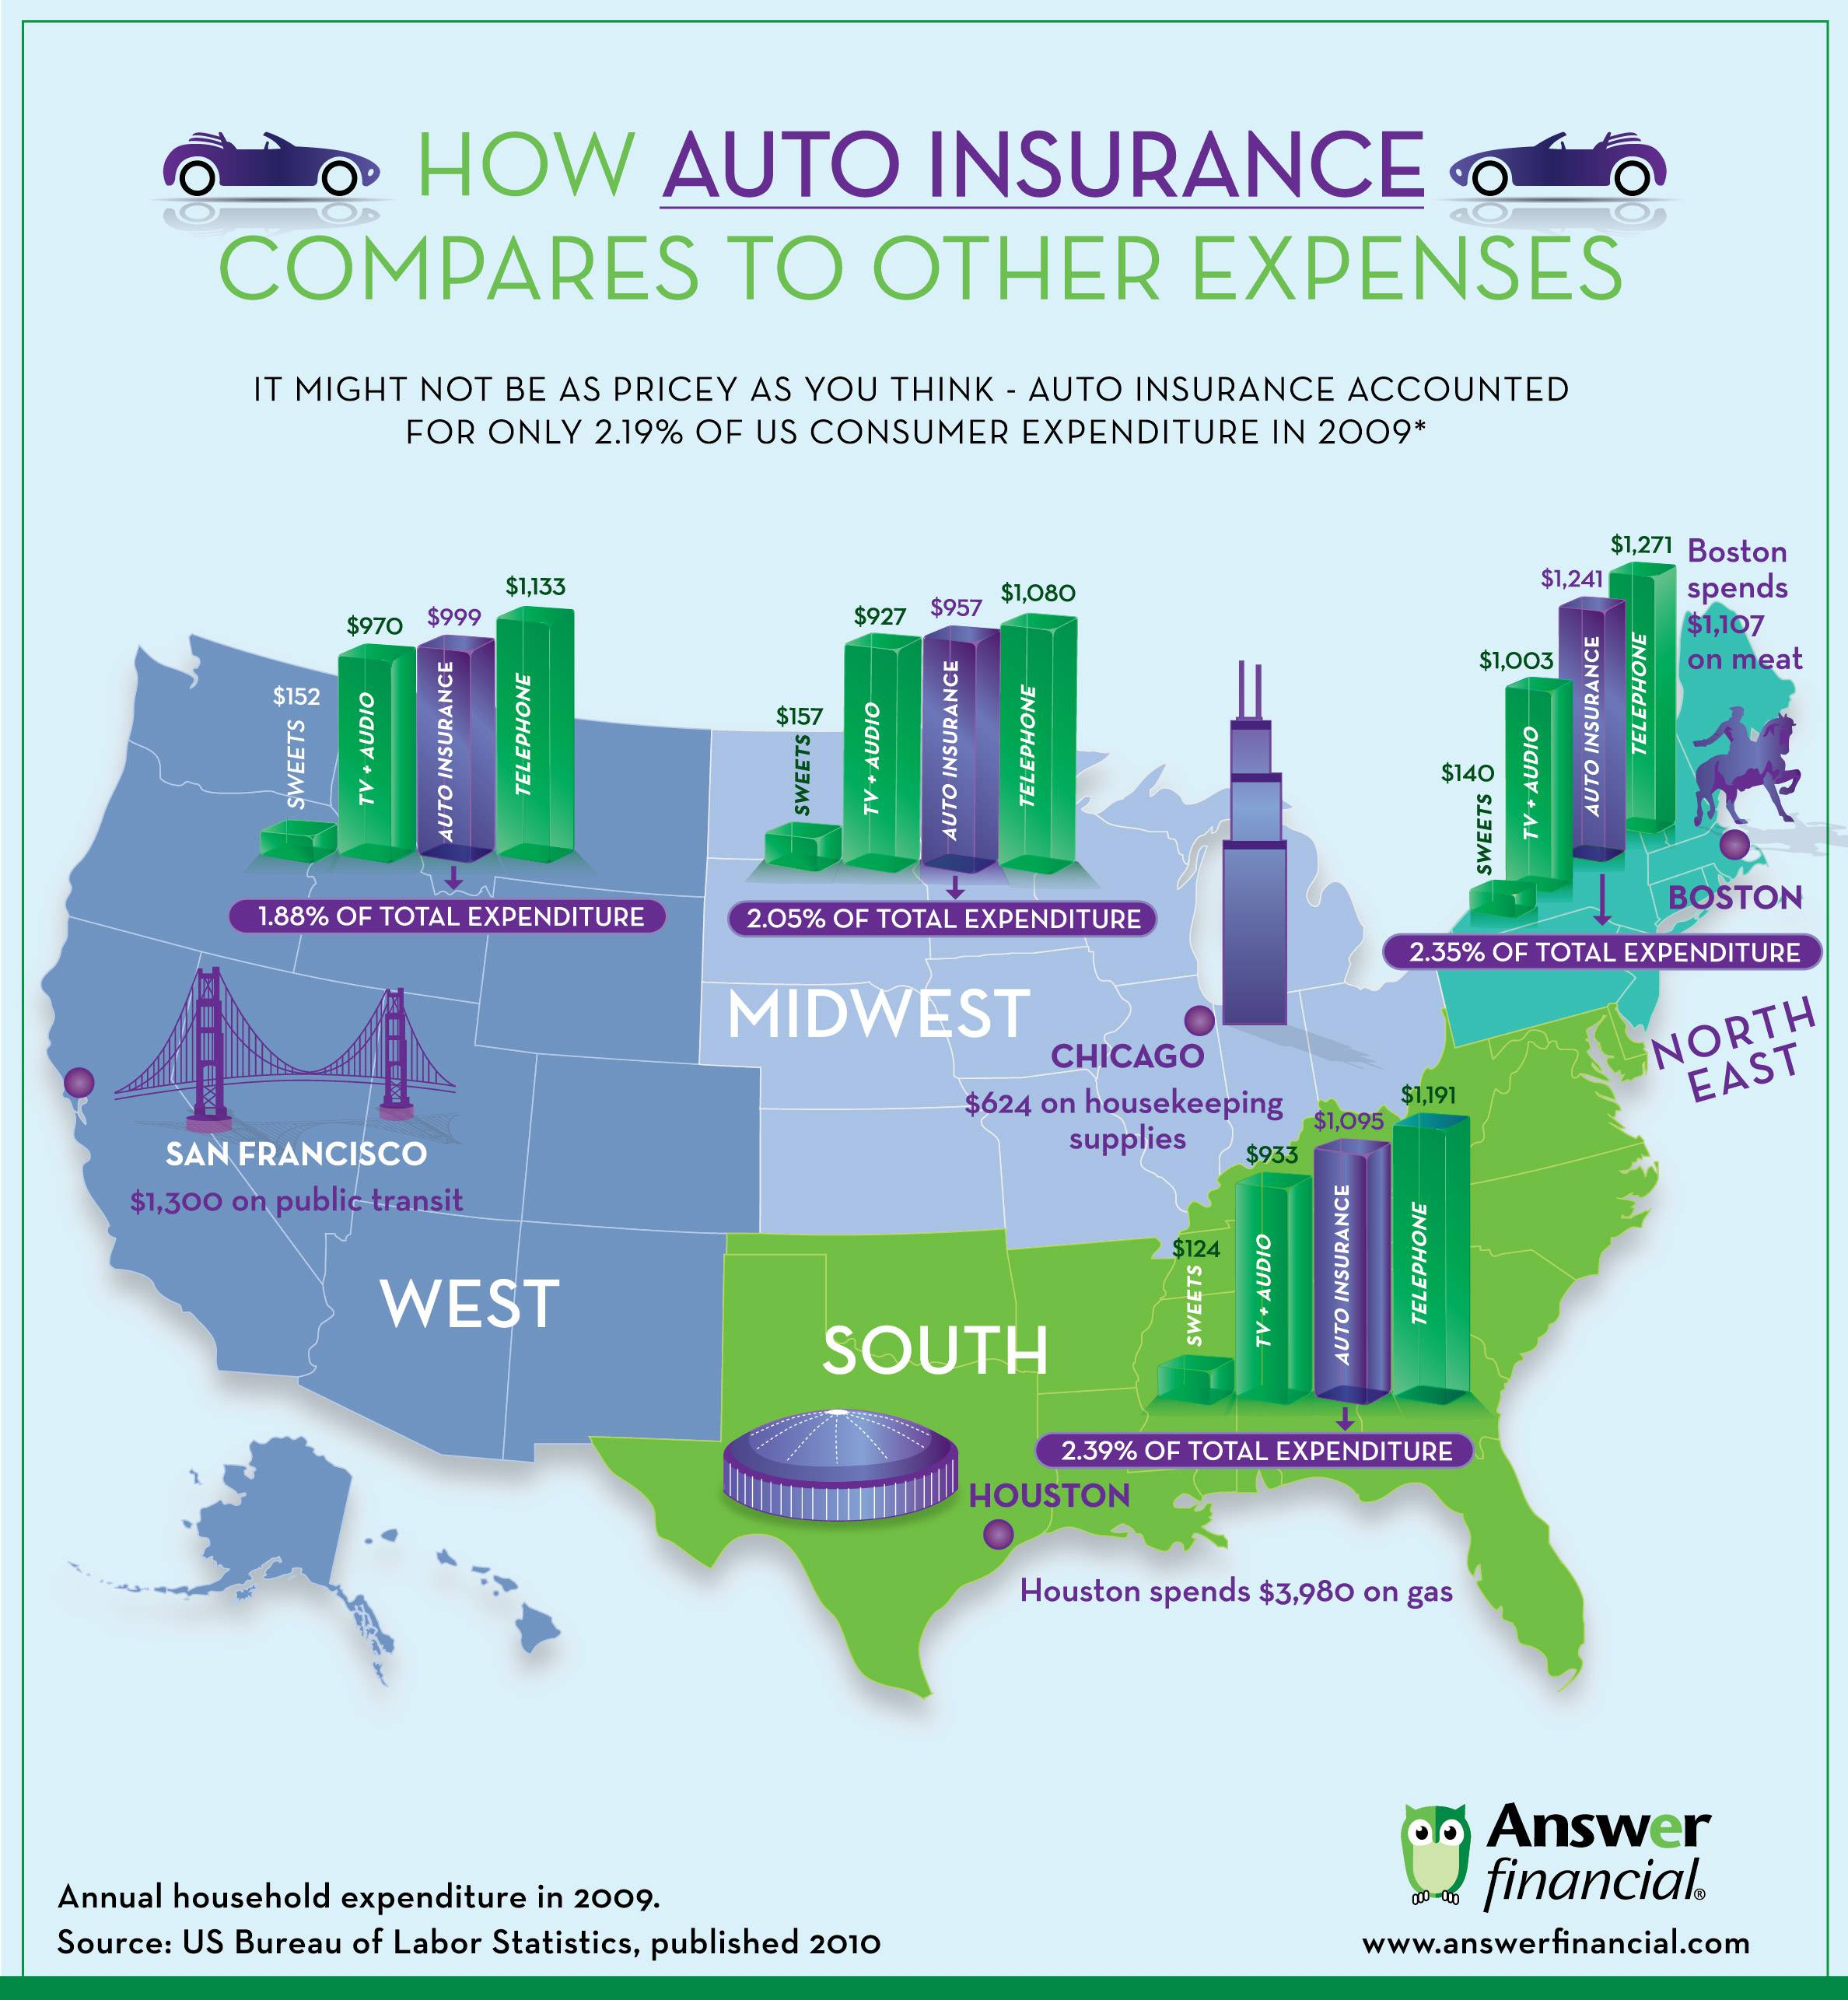 inso graphic comparing auto insurance to other household expenses